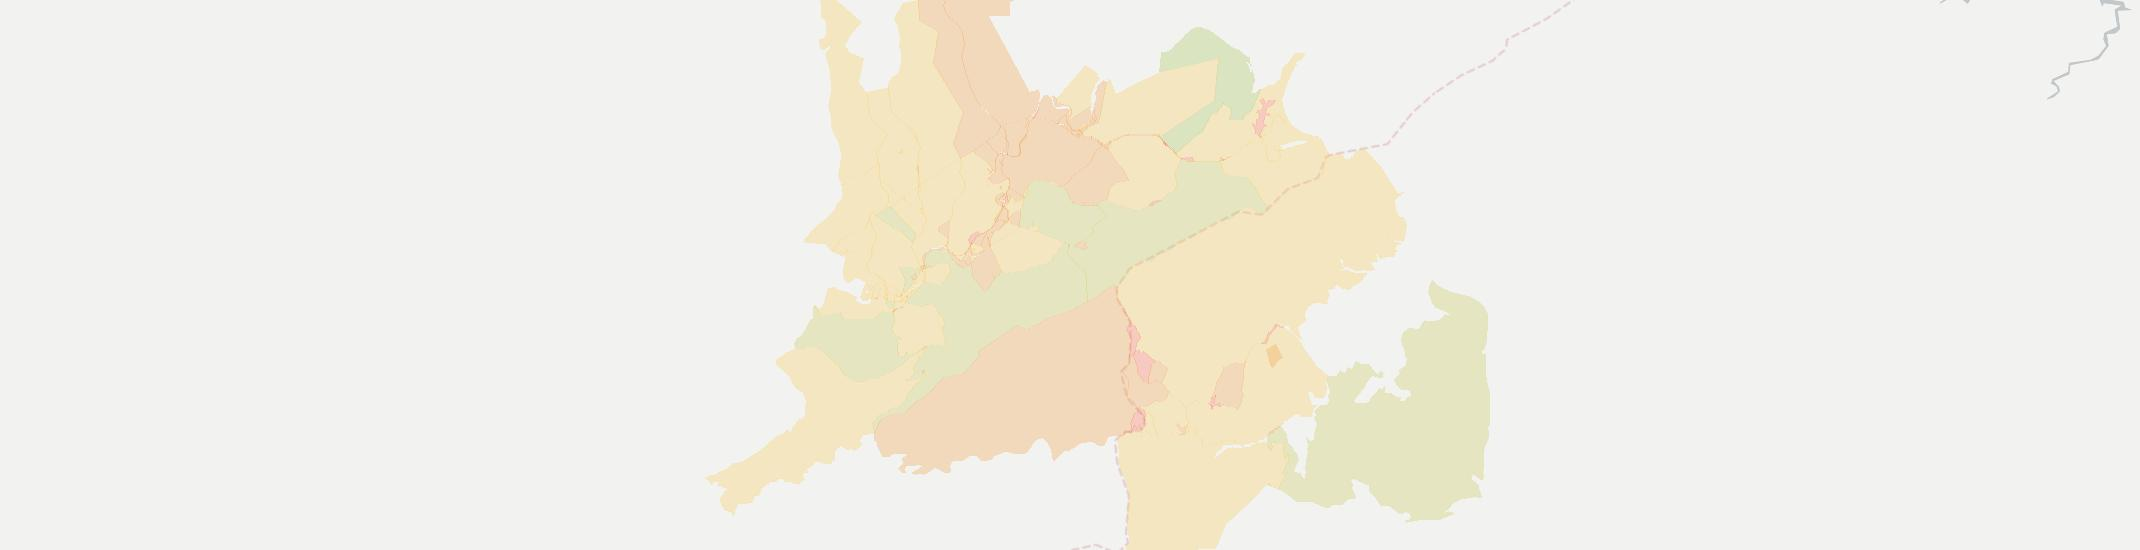 Mayking Internet Competition Map. Click for interactive map.